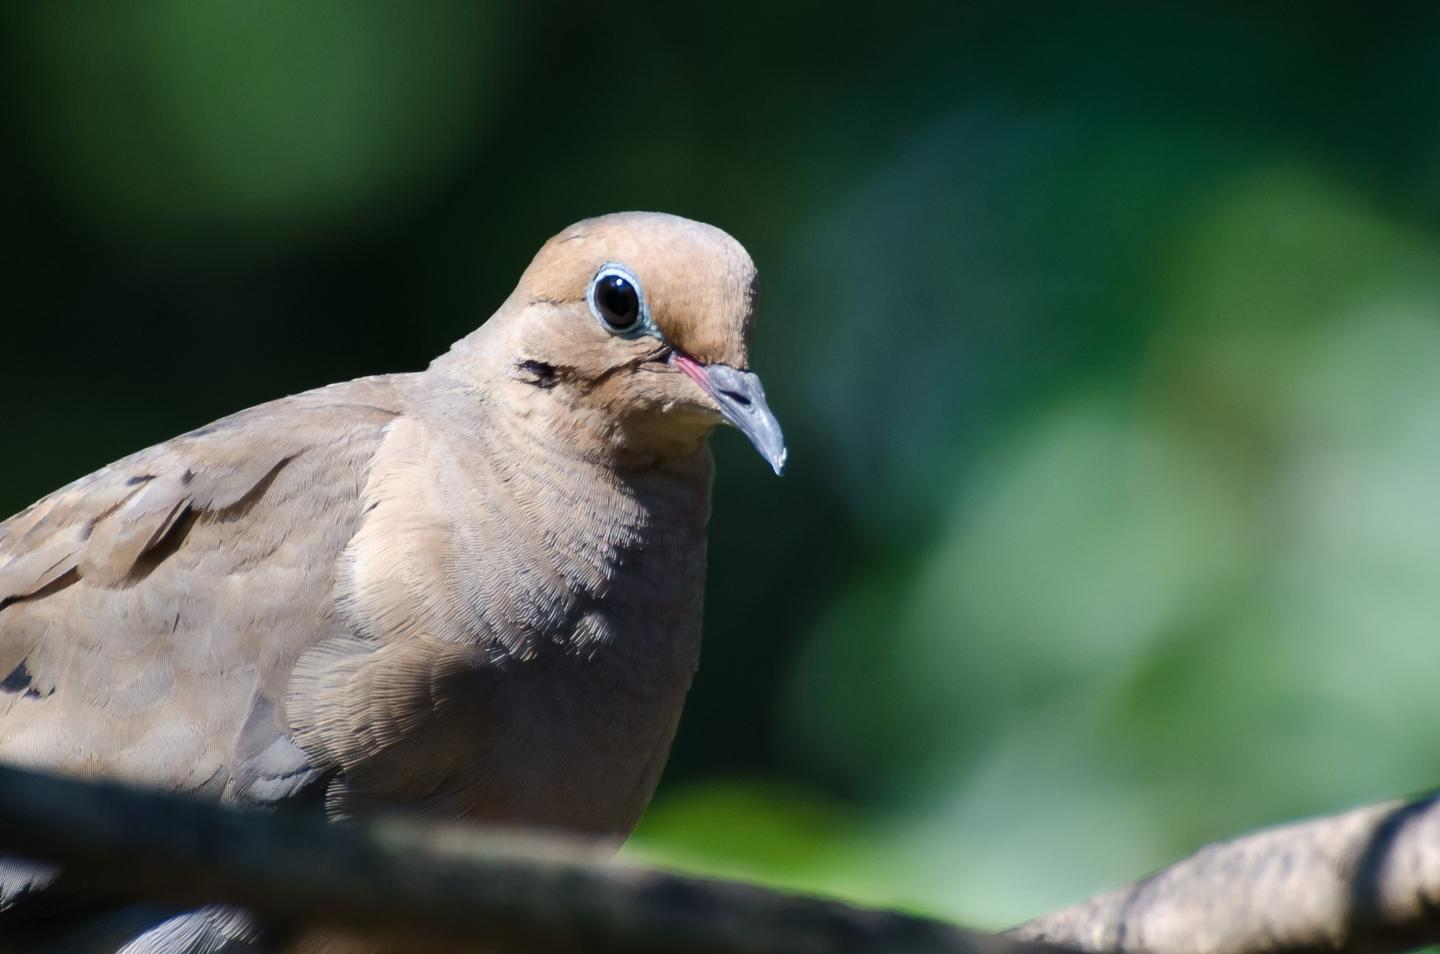 The mourning dove had its low-frequency song drowned out by the sound of the drone